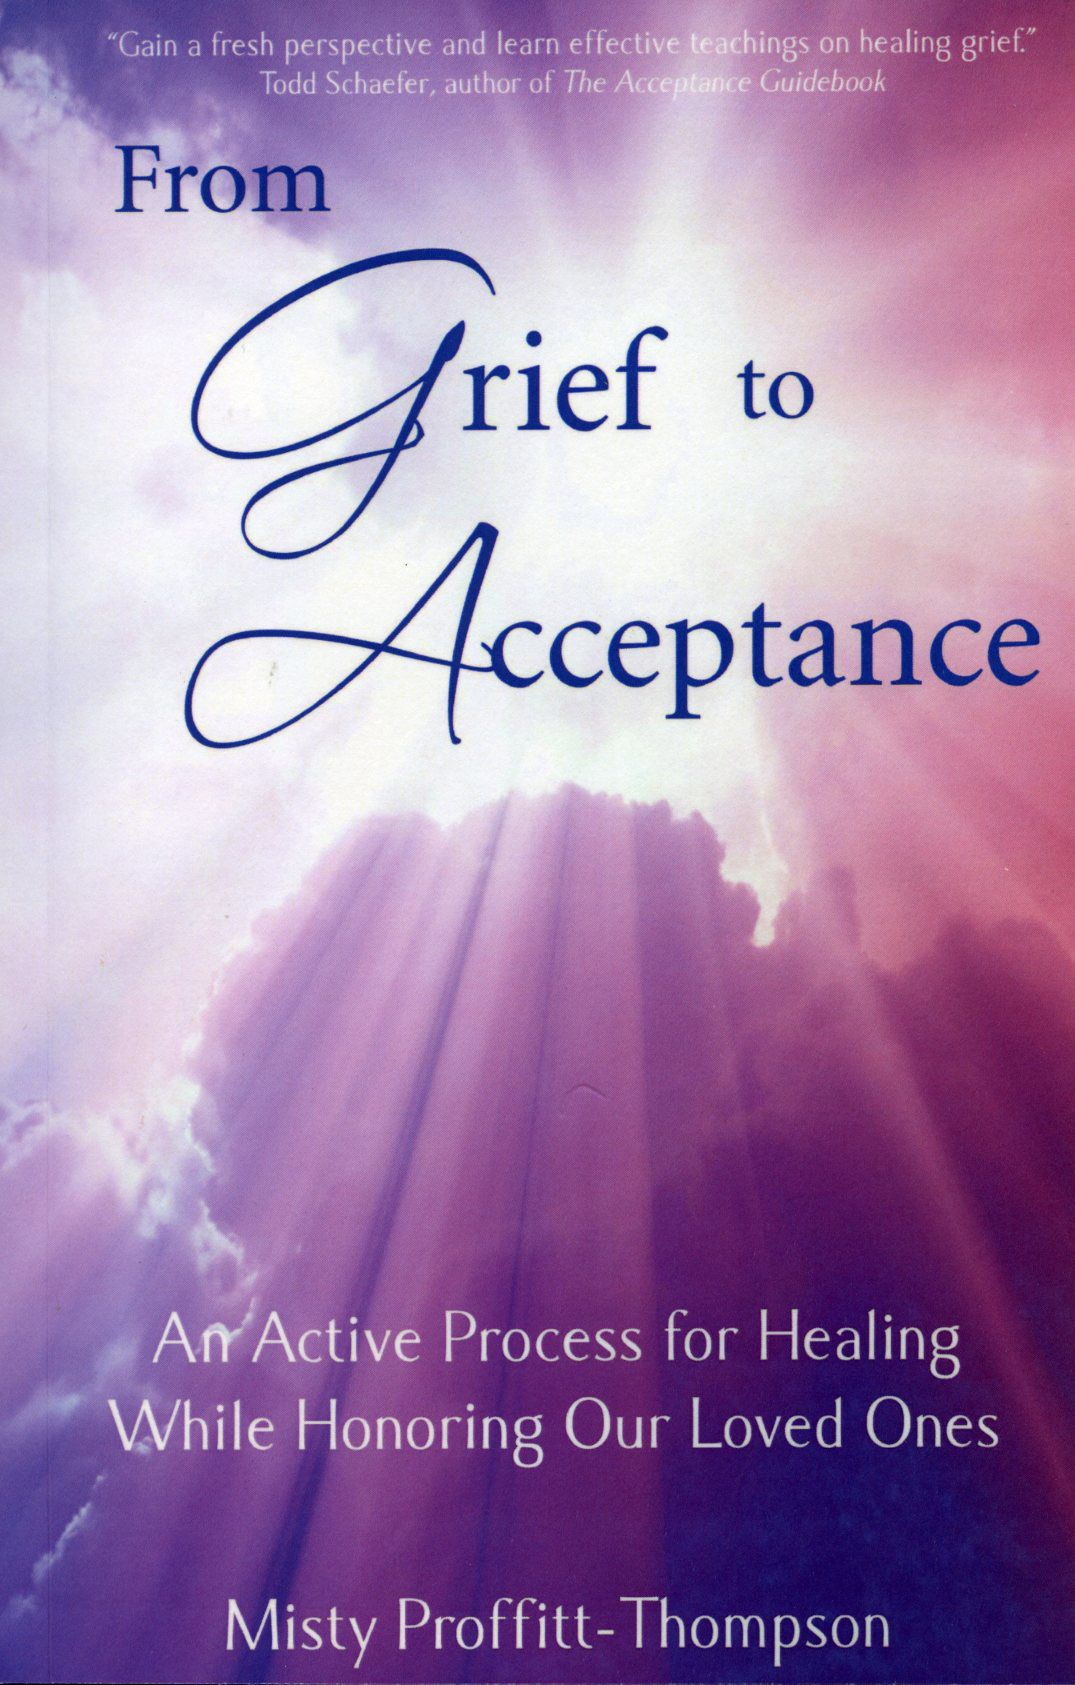 From Grief to Acceptance